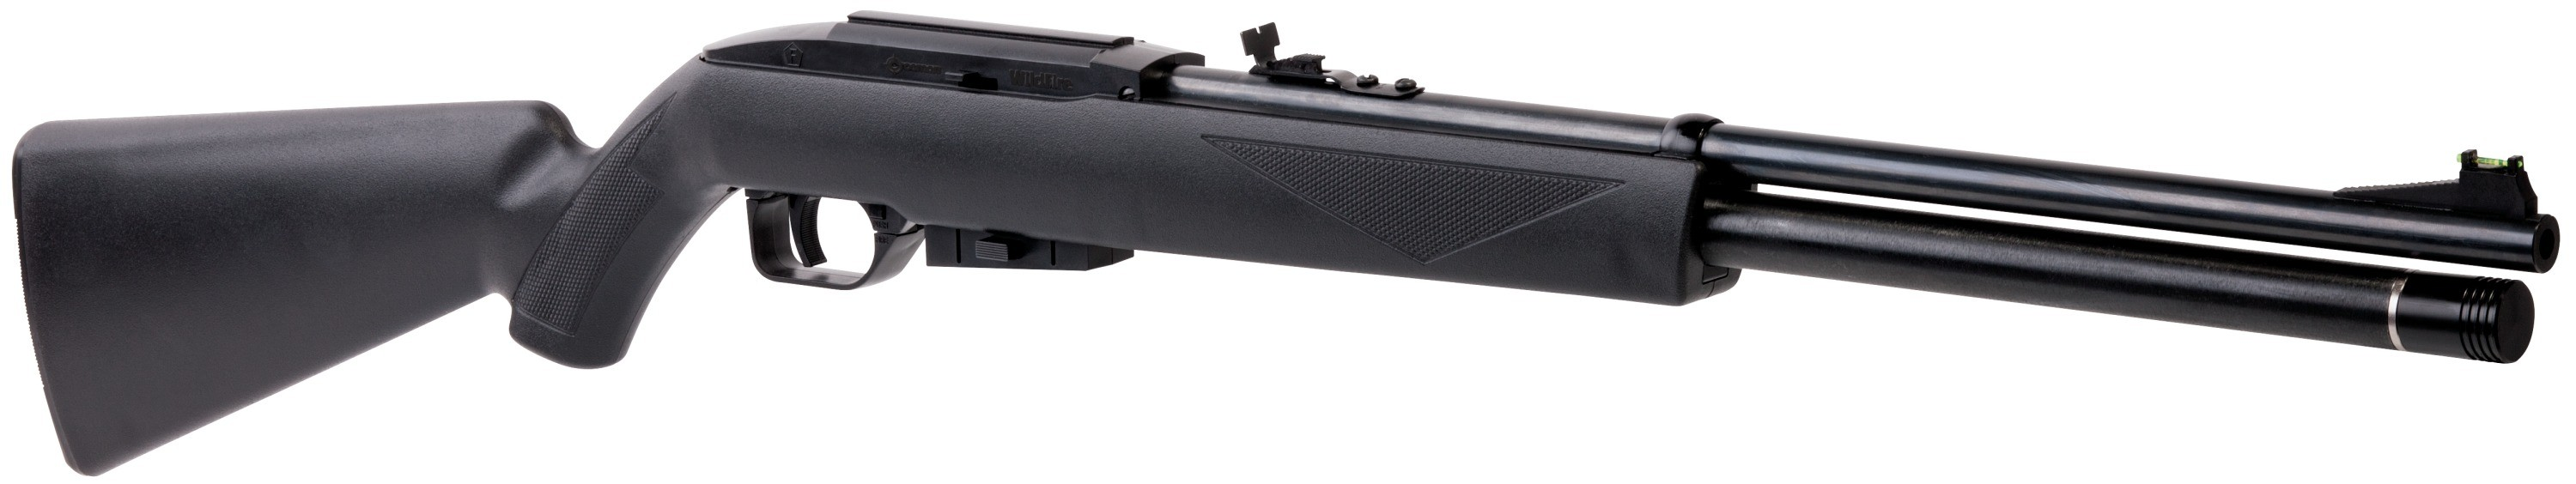 The 2017 New Airgun Products News Bulletin ~ Air Rifle SA